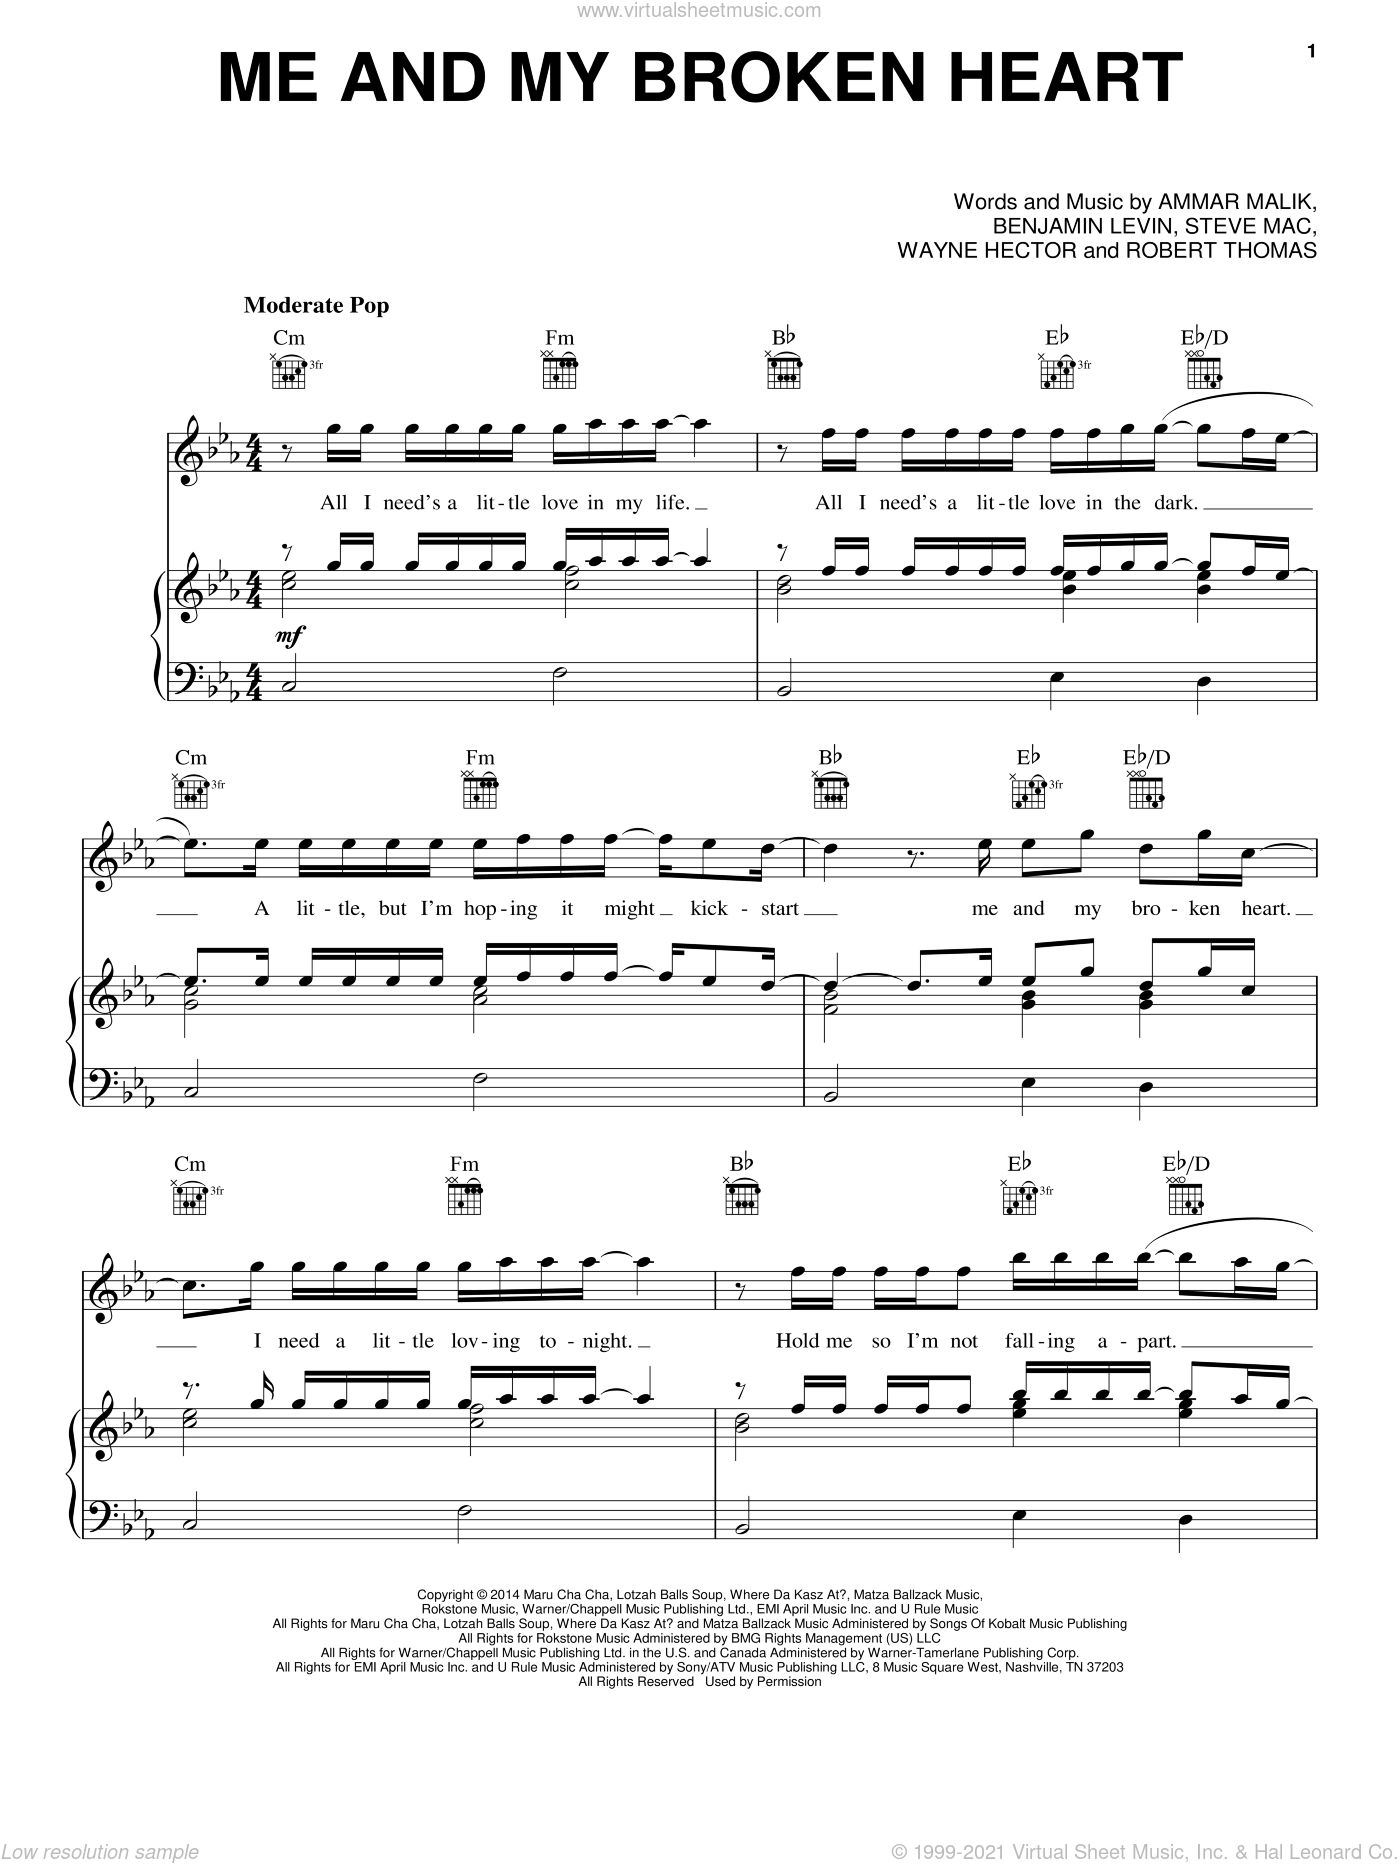 Me And My Broken Heart sheet music for voice, piano or guitar by Wayne Hector, Ammar Malik, Benjamin Levin, Rixton, Rob Thomas and Steve Mac. Score Image Preview.